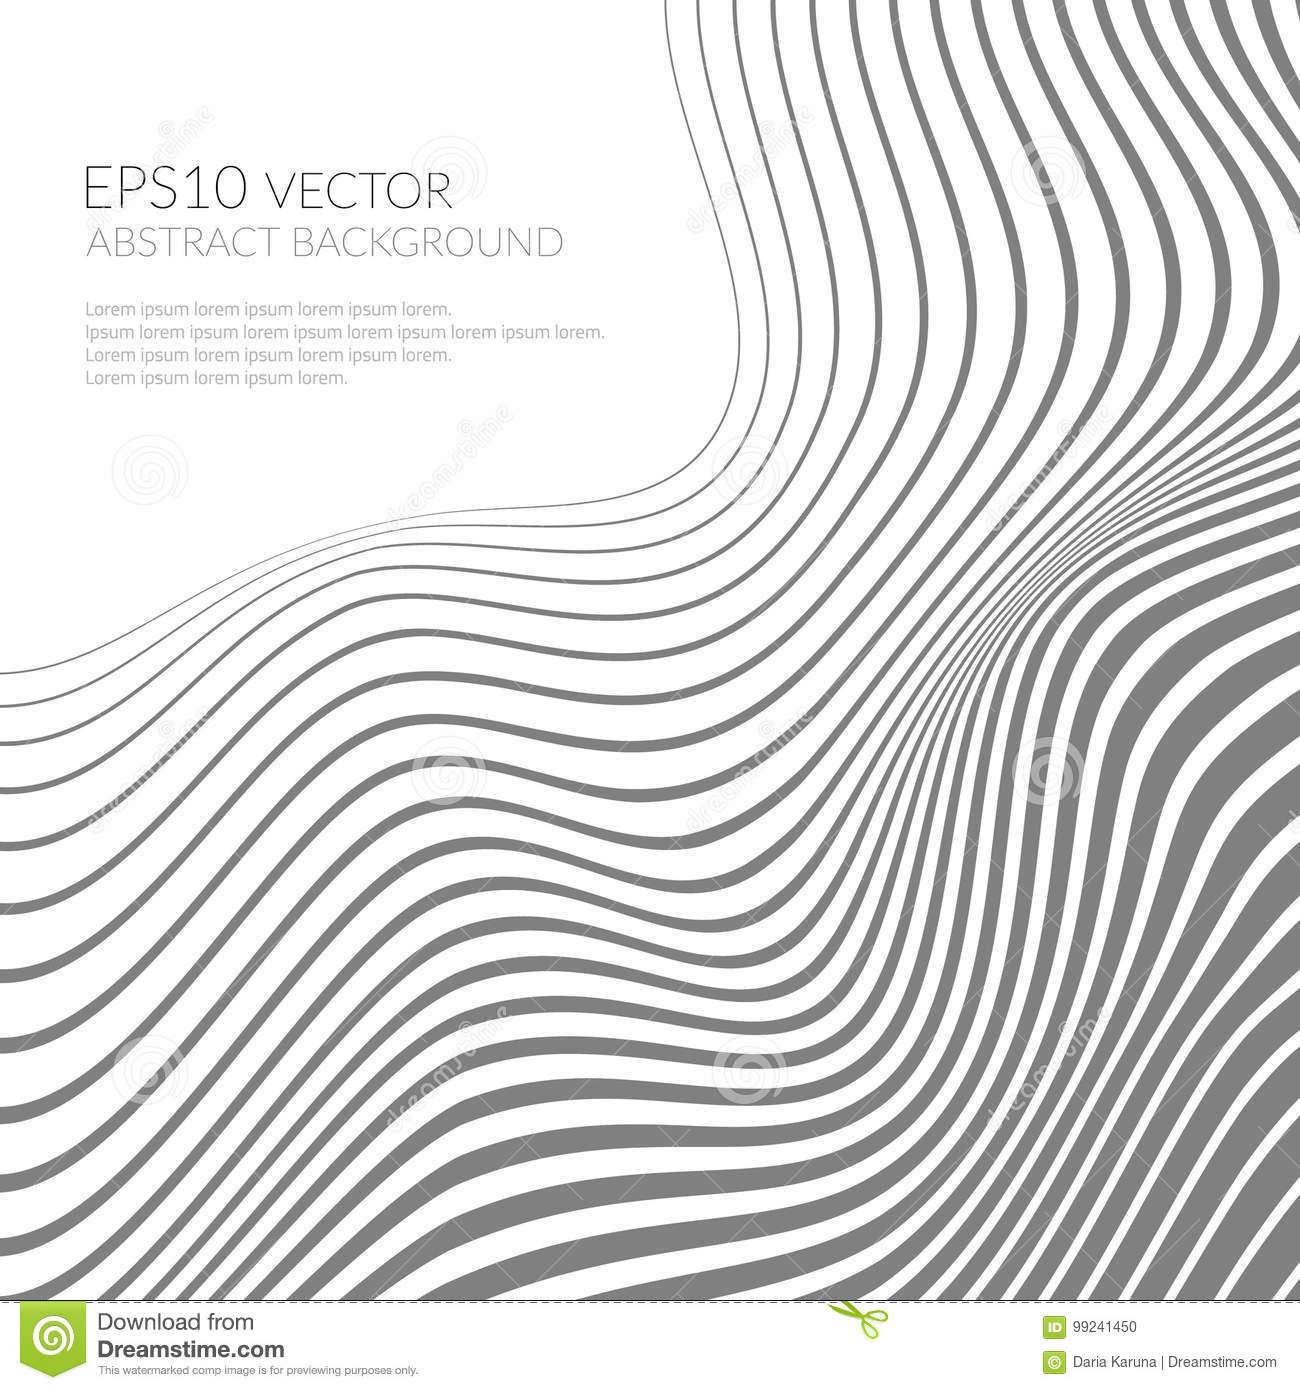 Abstract Background With Curved Lines And Shapes Distortion